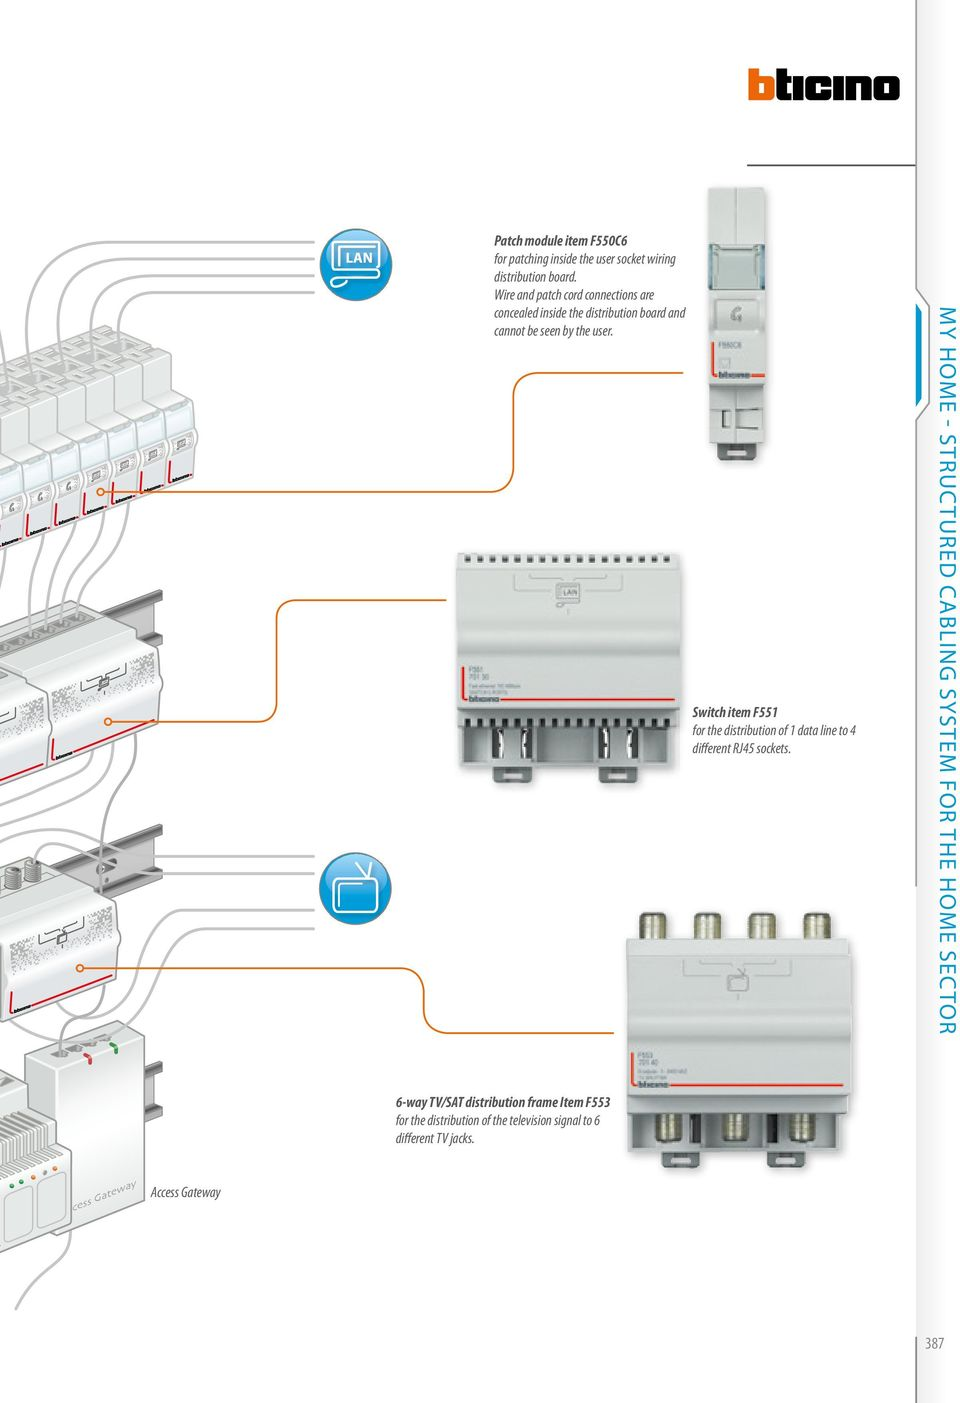 medium resolution of switch item f55 for the distribution of data line to different rj5 sockets 6 structured cabling system for the home